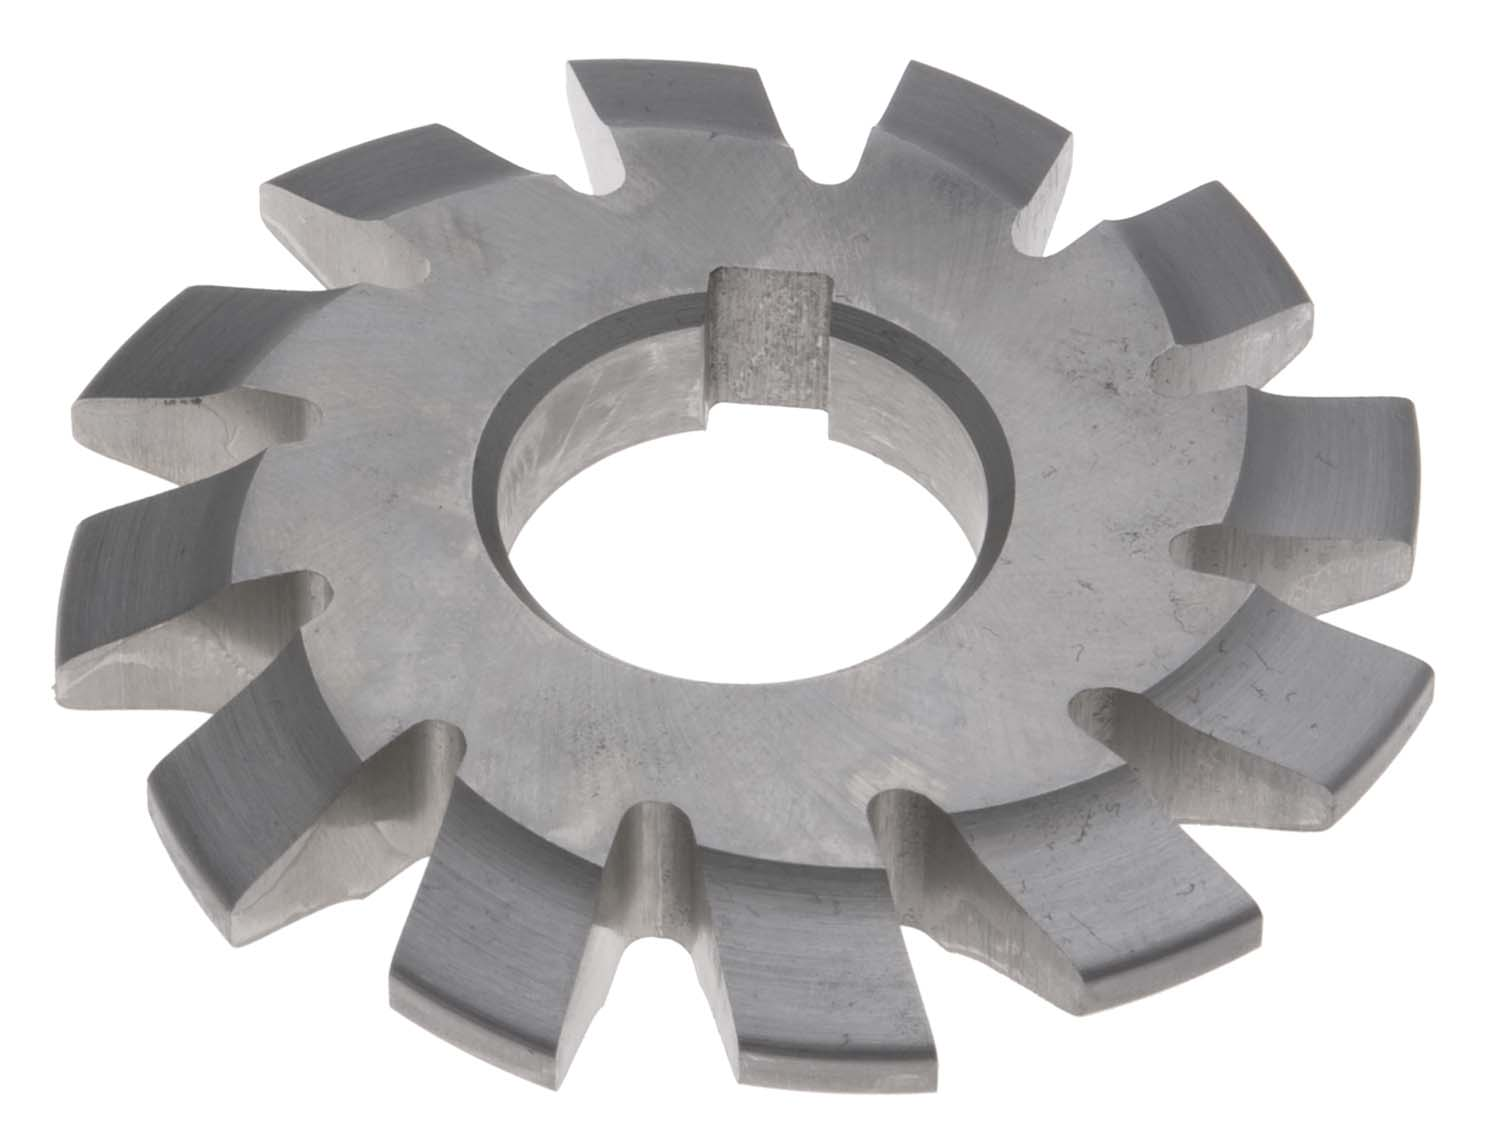 10 Diametral Pitch # 1 Involute Gear Cutter - 1 Inch ID - 14-1/2 Degree Pressure Angle